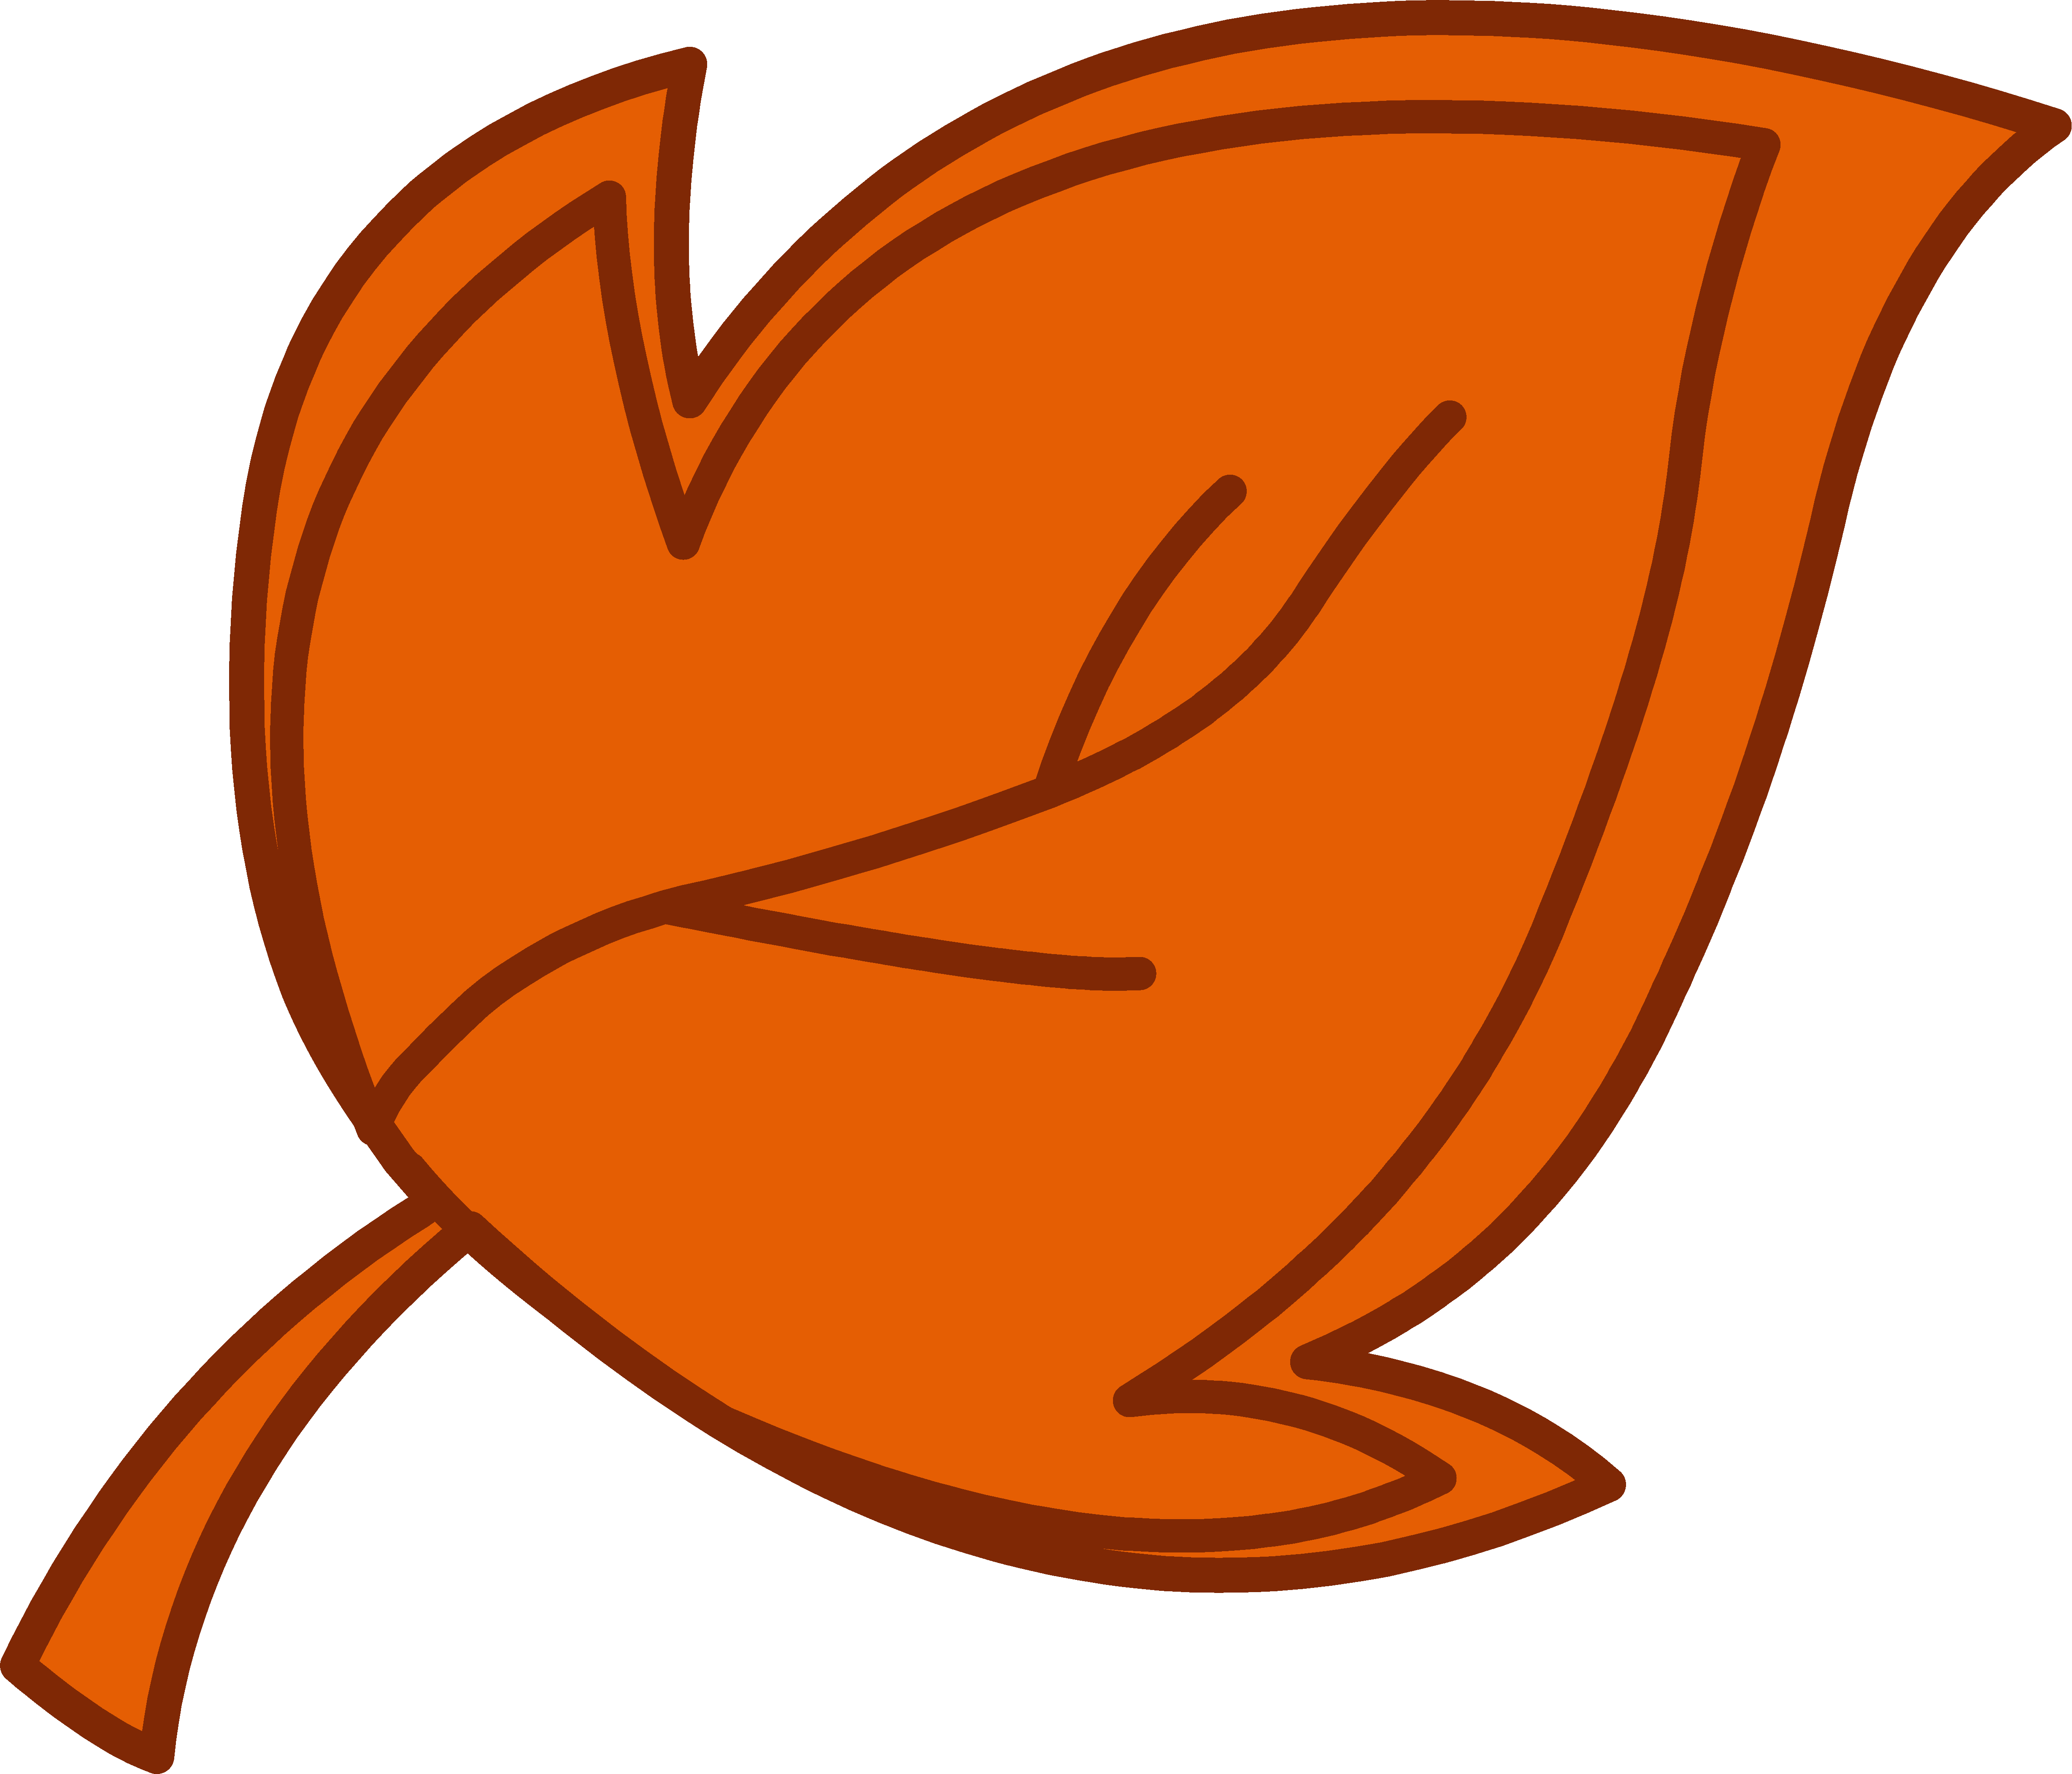 4911x4204 Fall Leaves Clipart